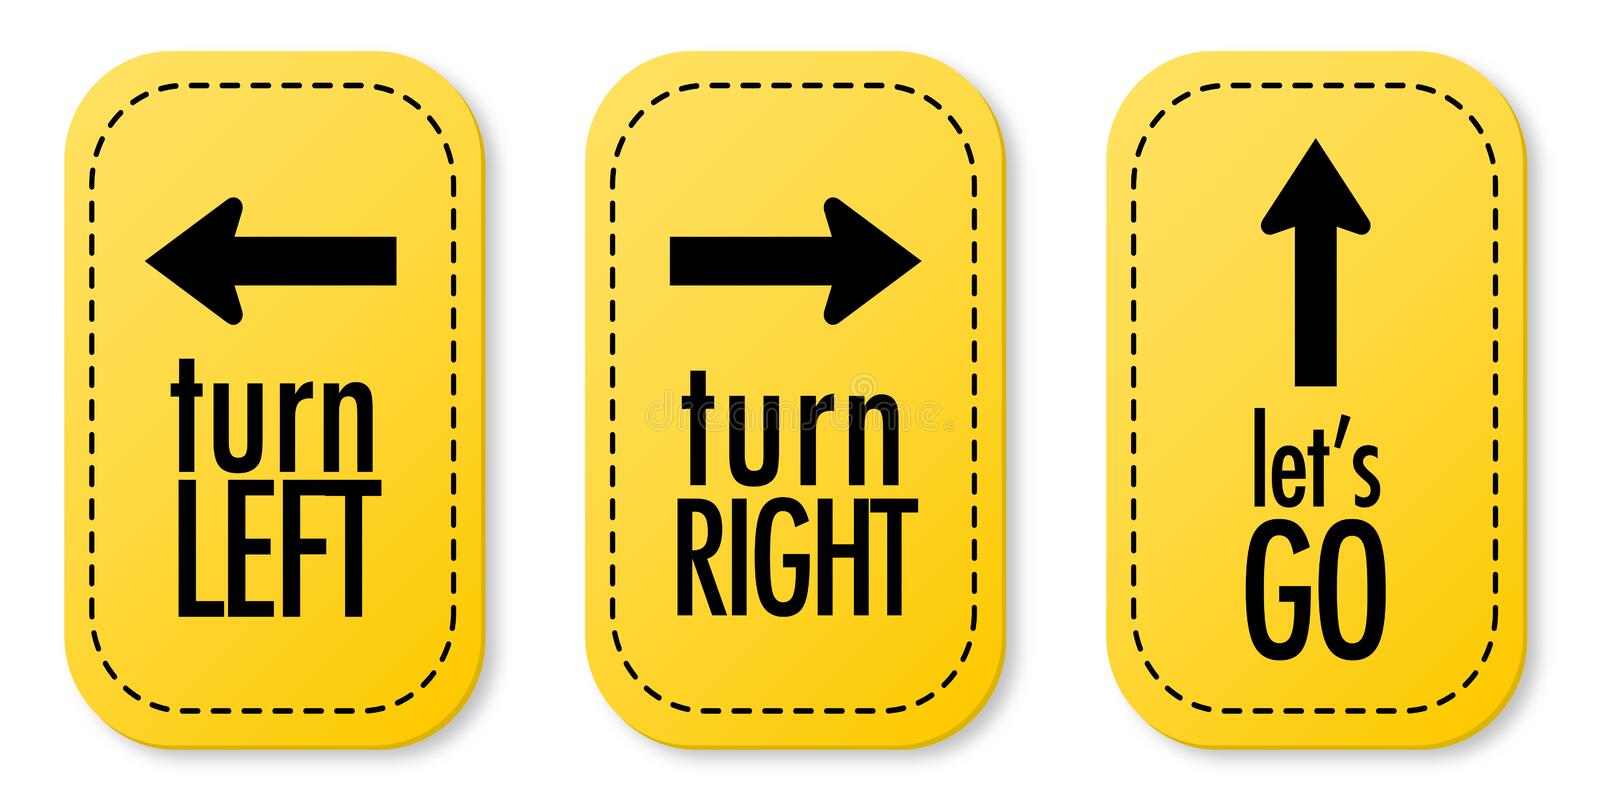 Turn left, Turn right and Let's go stickers stock illustration